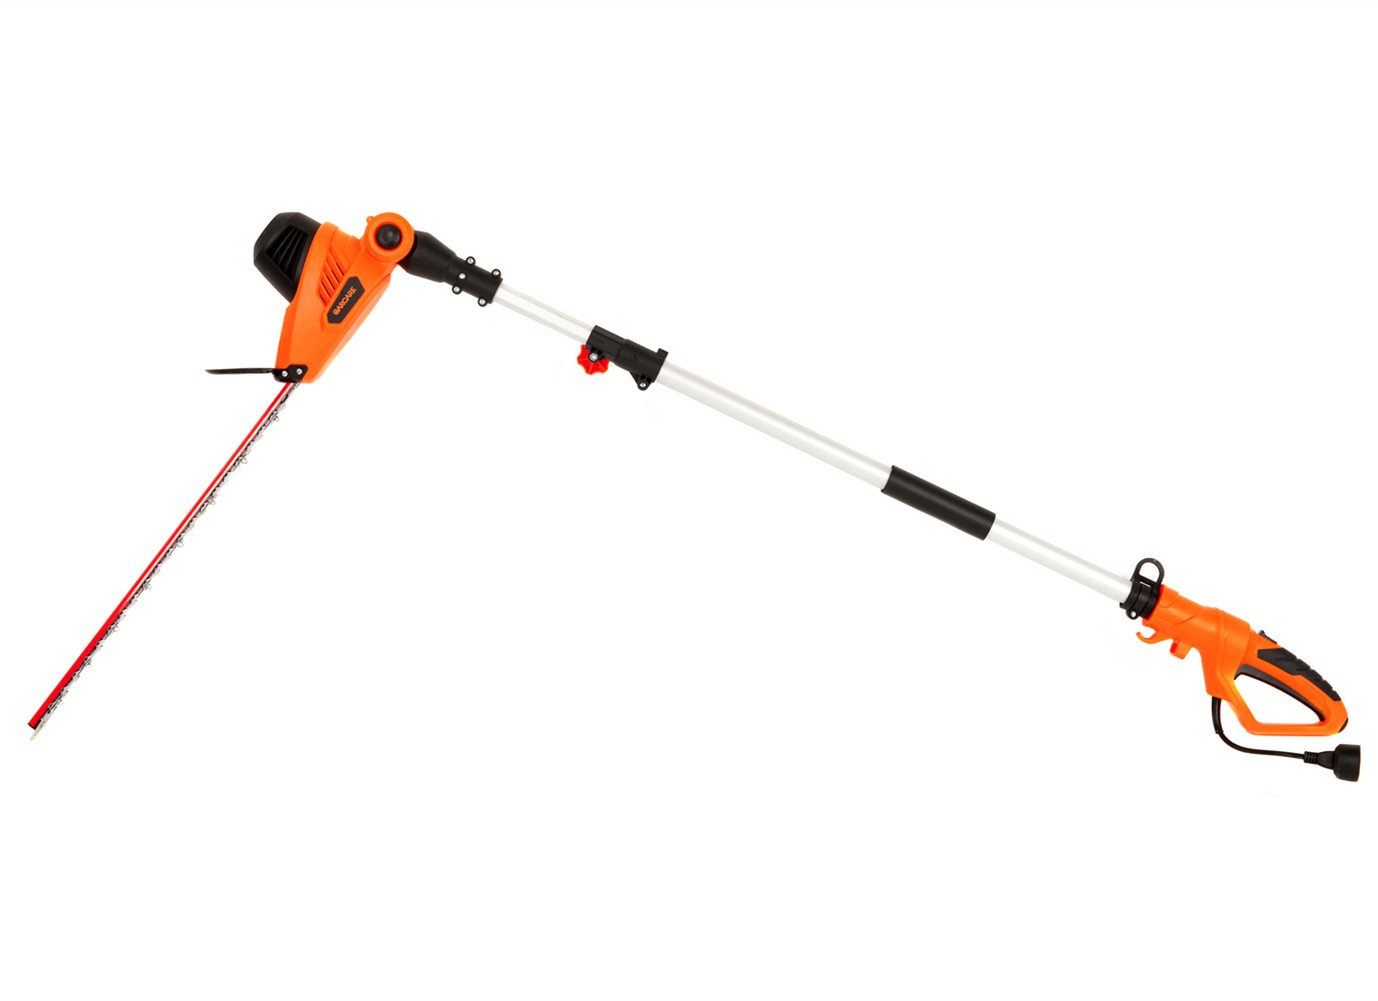 GARCARE 4.8-Amp Multi-Angle Corded Pole Hedge Trimmer with 20-Inch Laser Blade, Blade Cover Included by GARCARE